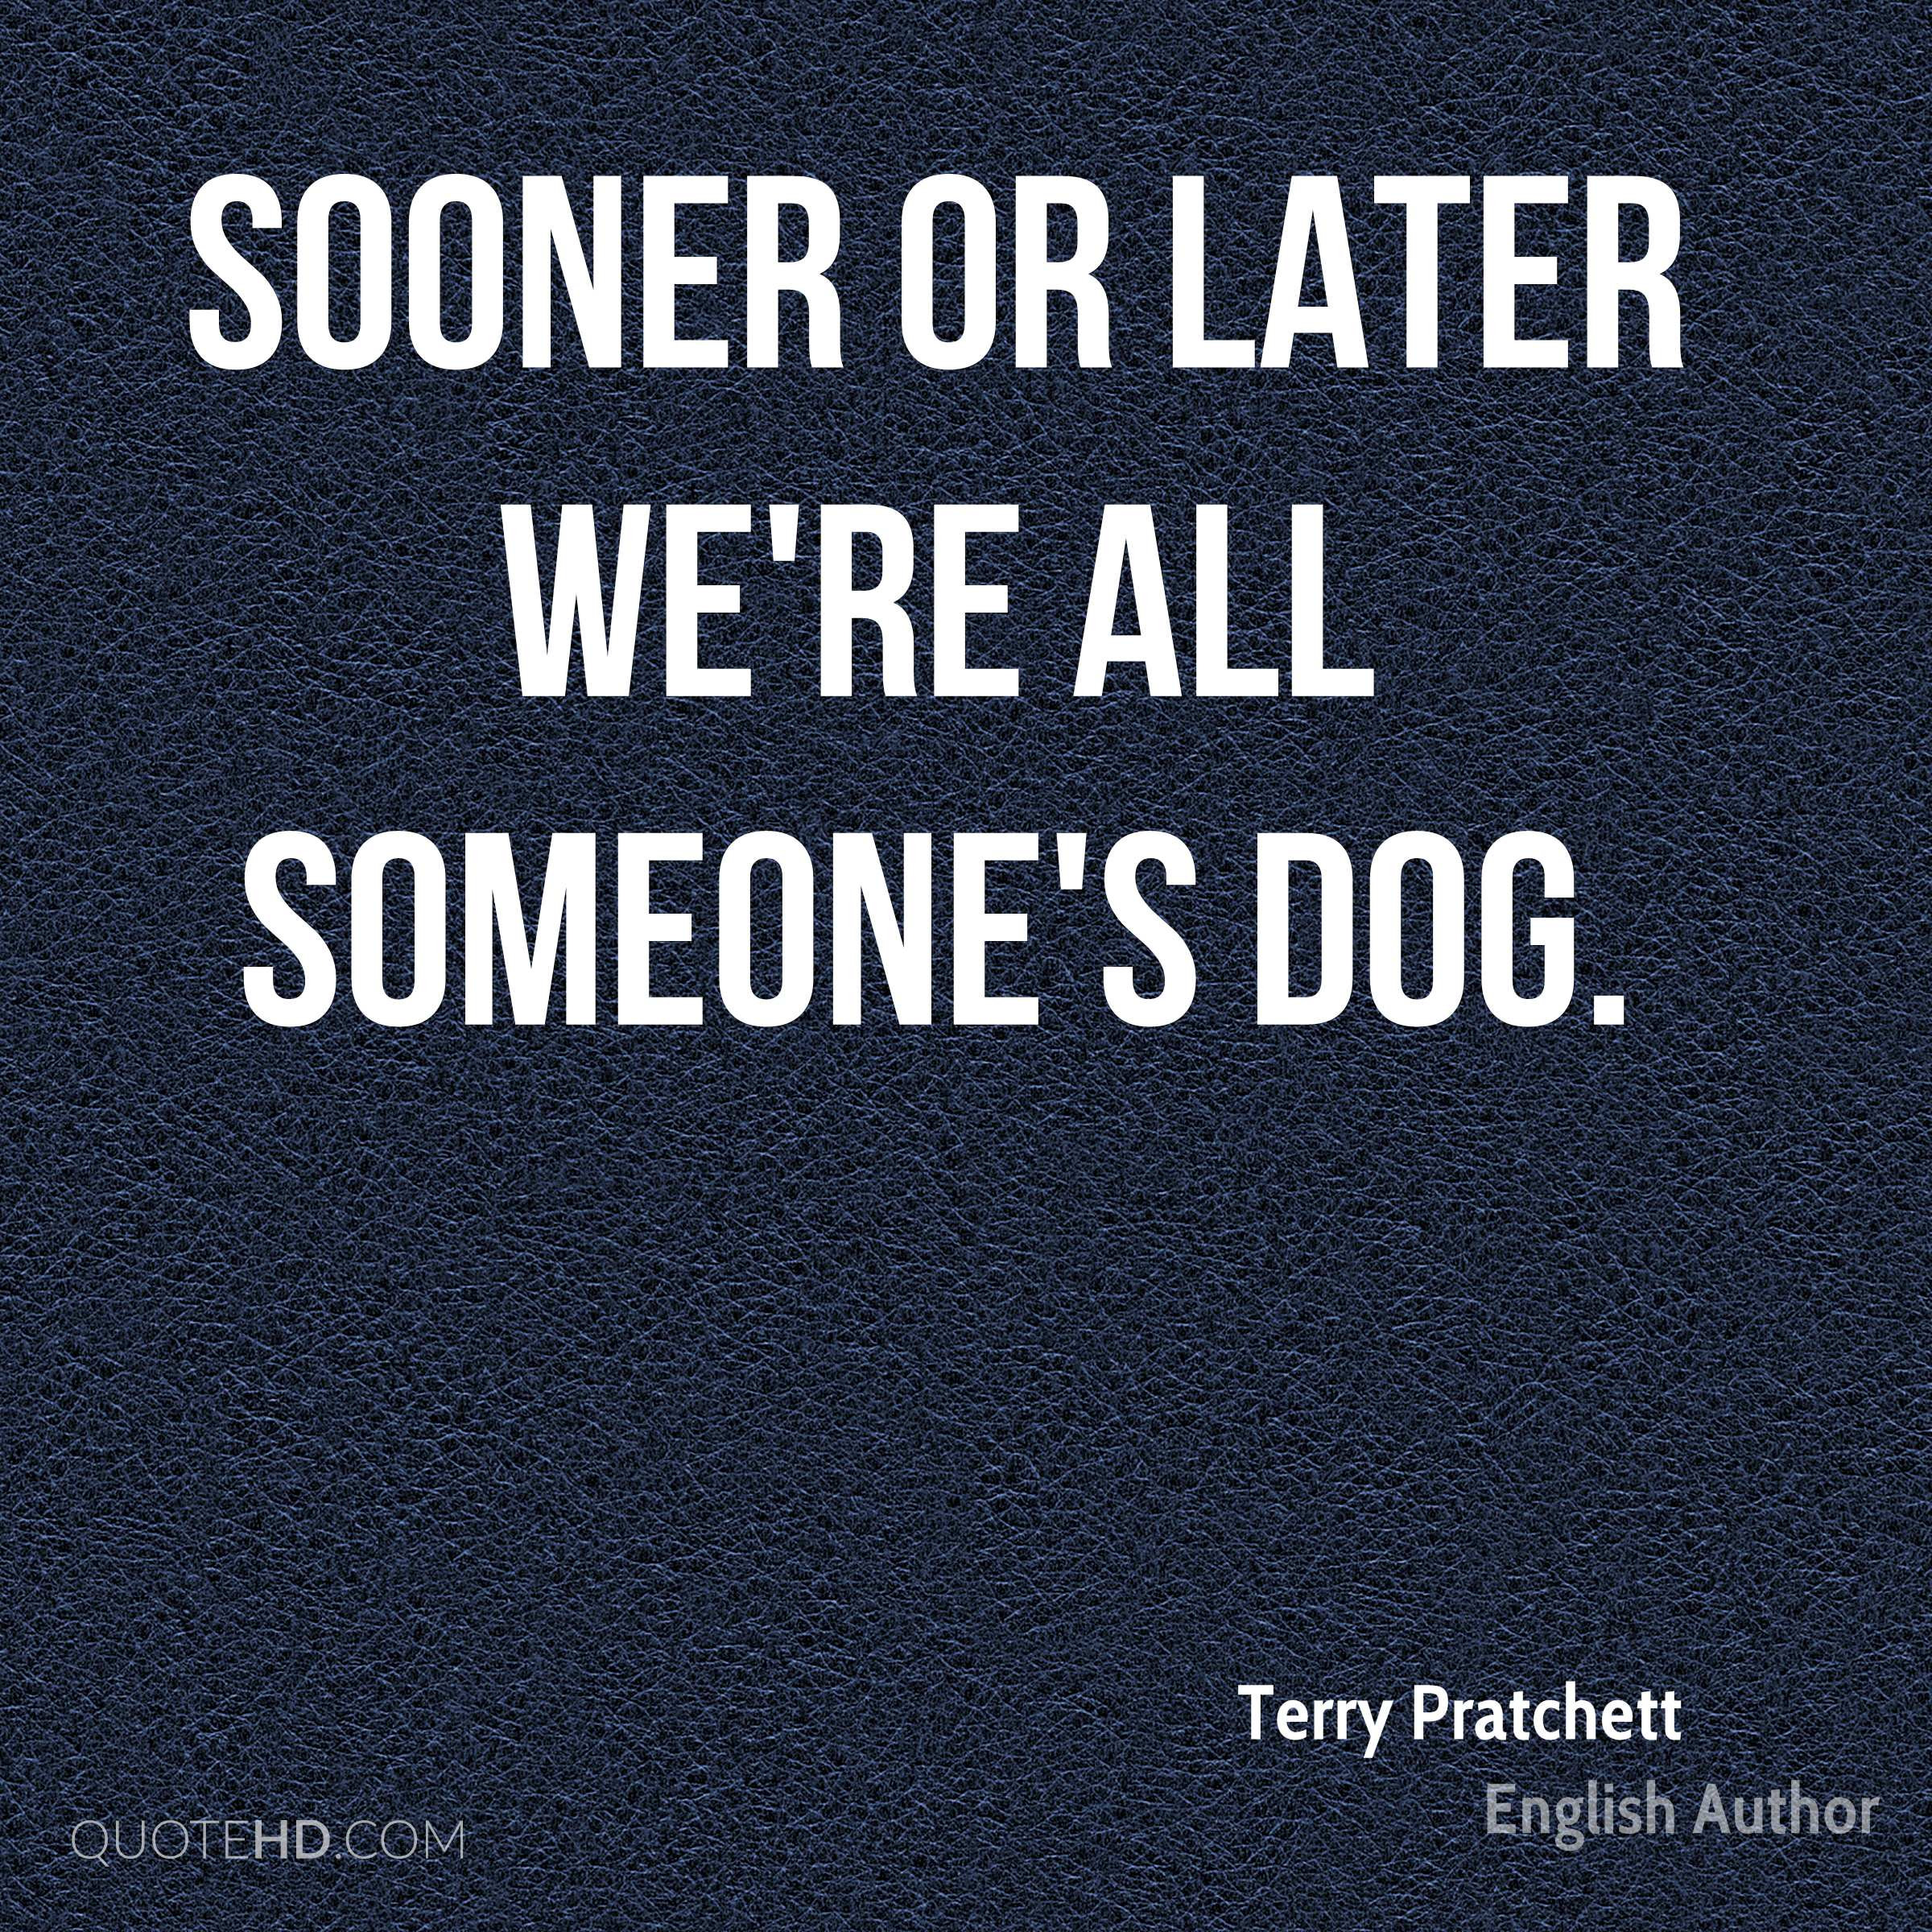 Sooner or later we're all someone's dog.